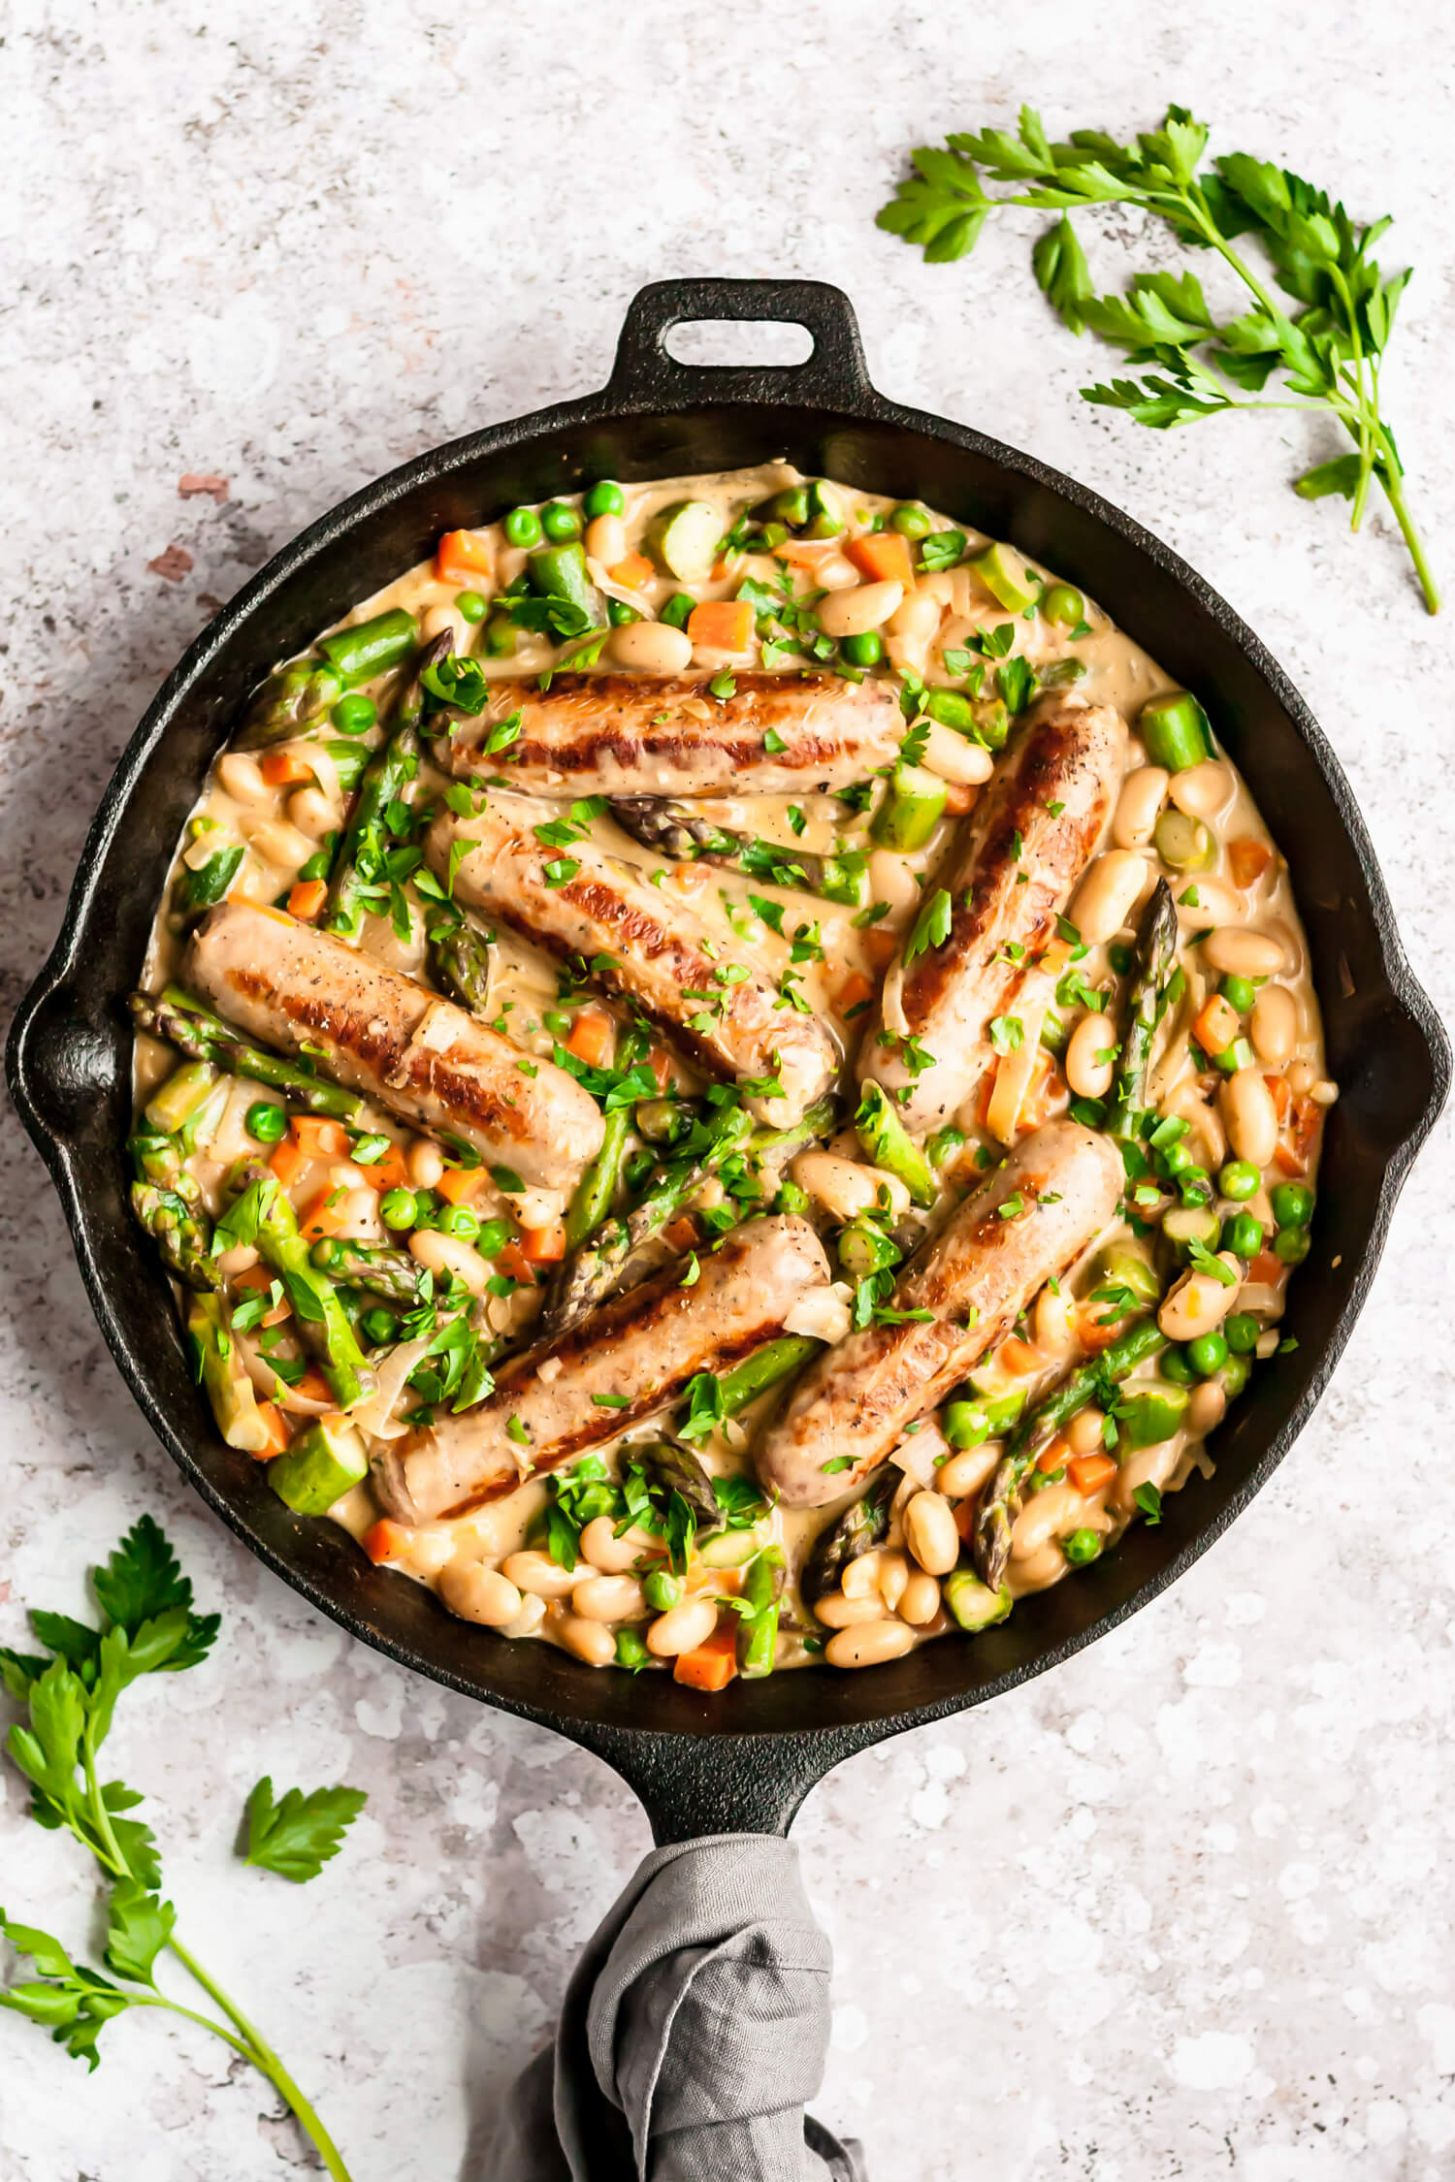 Creamy Chicken Sausage Skillet with Asparagus and Peas - Recipes Chicken Sausage